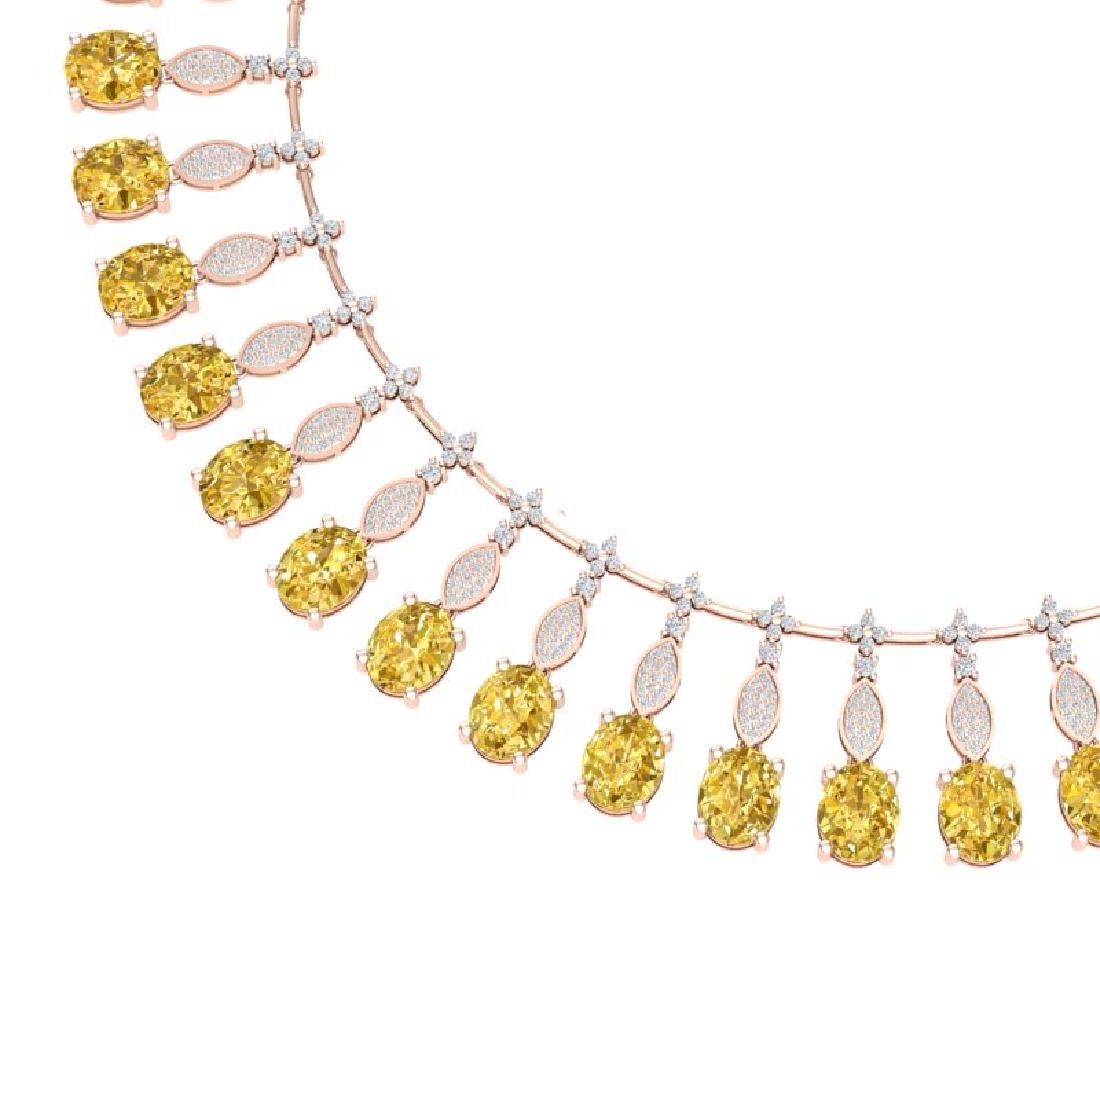 50.16 CTW Royalty Canary Citrine & VS Diamond Necklace